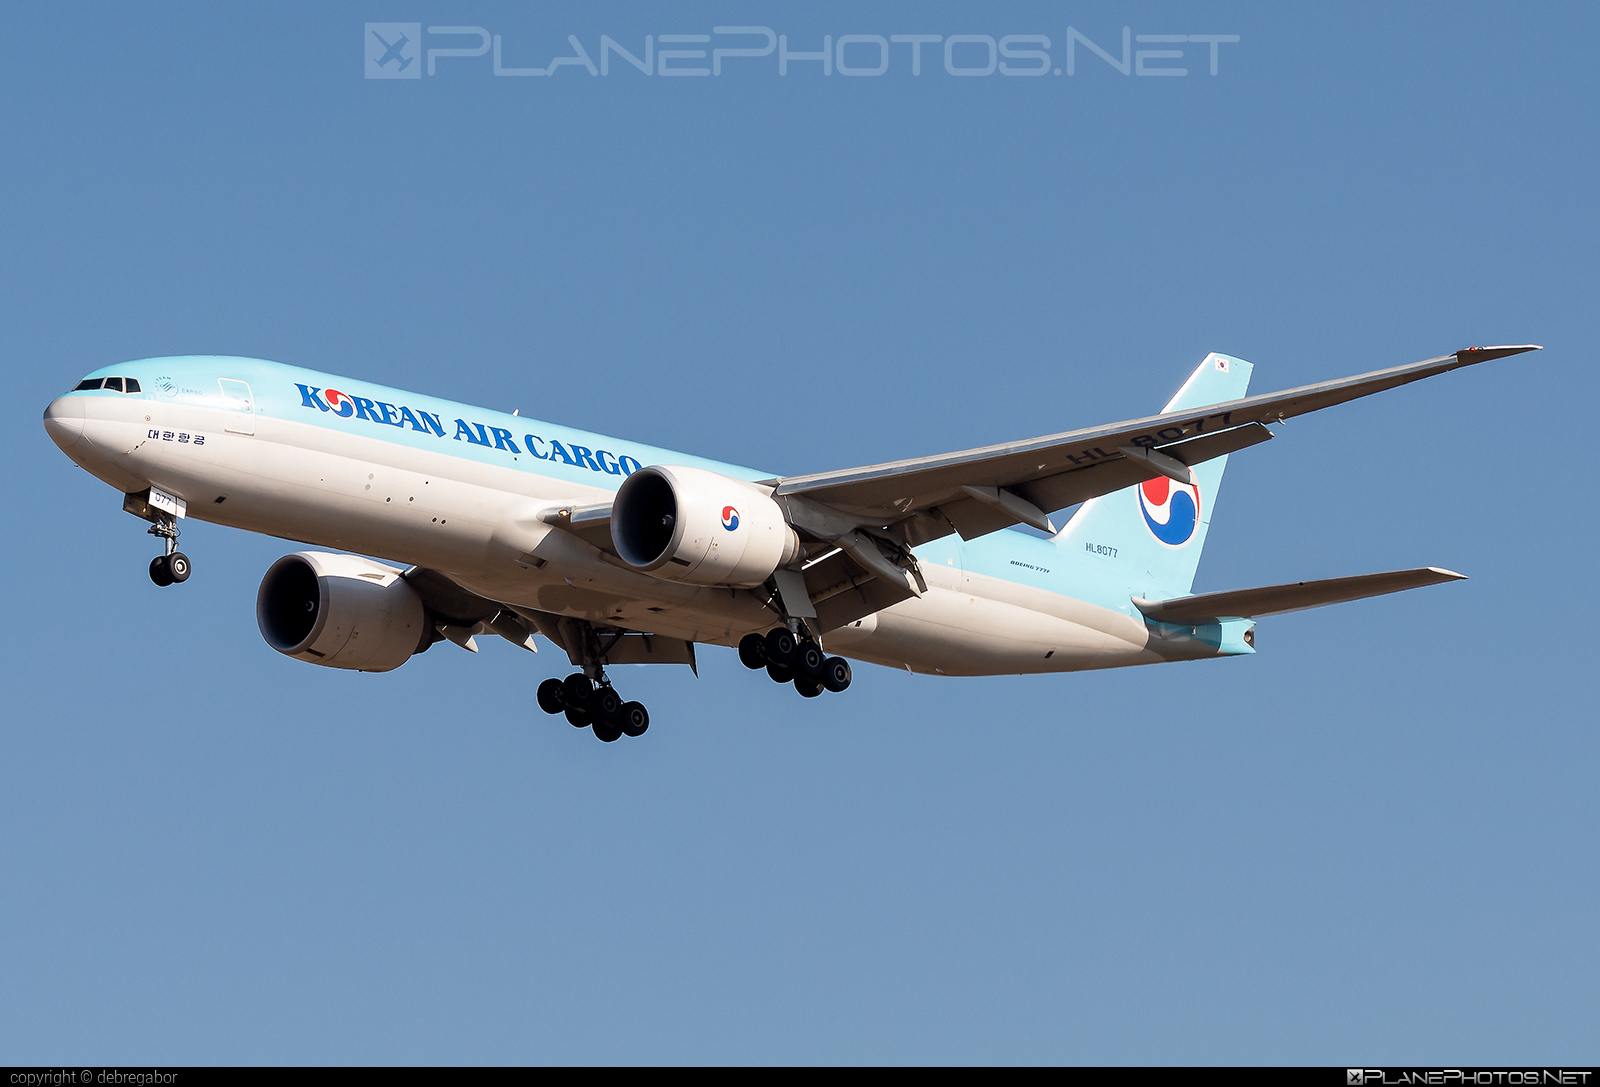 Boeing 777F - HL8077 operated by Korean Air Cargo #b777 #b777f #b777freighter #boeing #boeing777 #koreanair #koreanaircargo #tripleseven